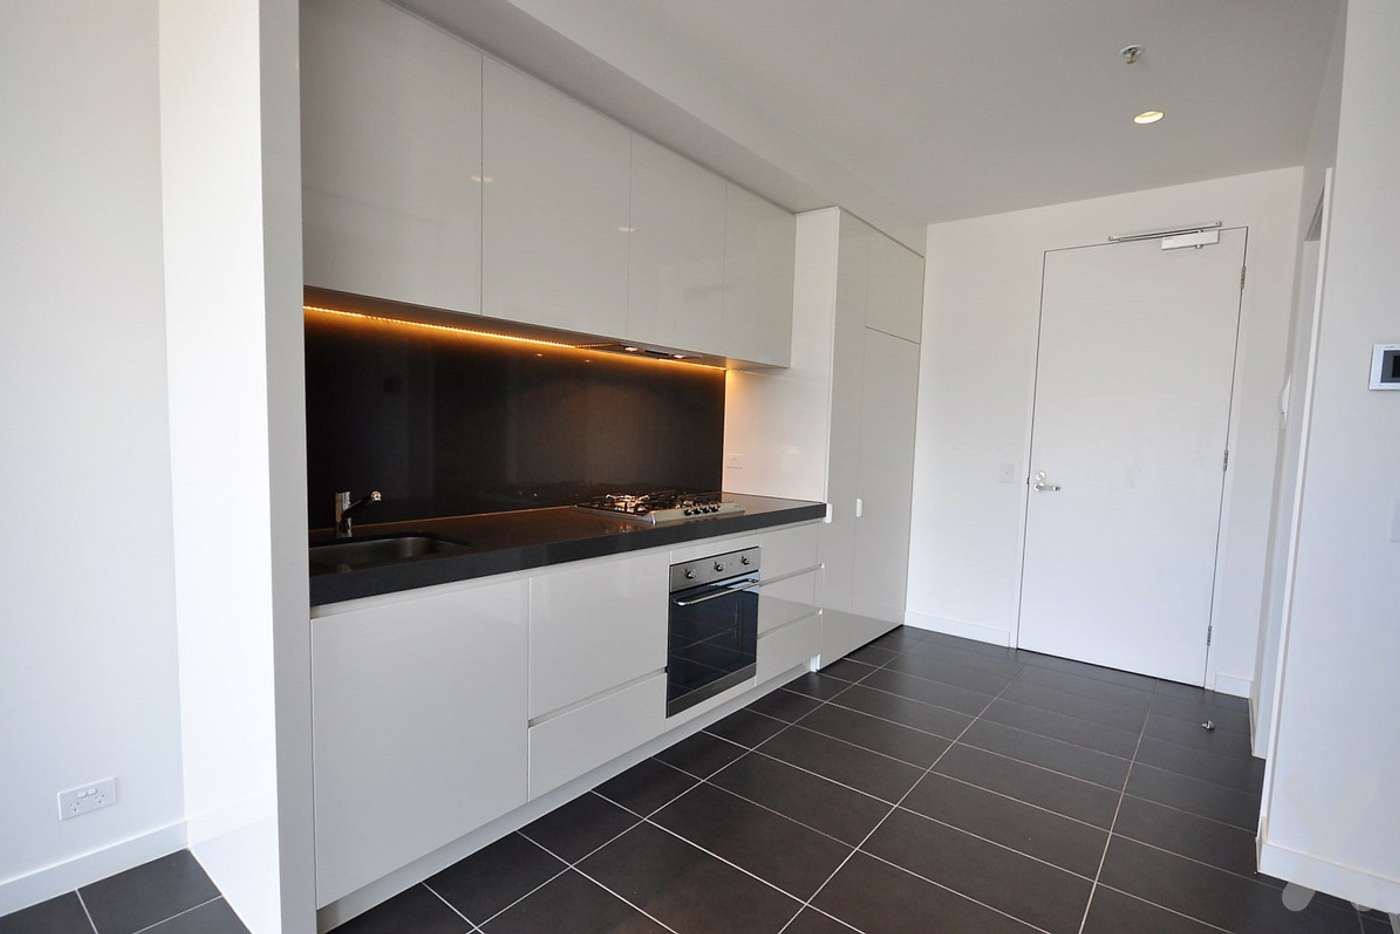 Main view of Homely apartment listing, 308/145 Roden Street, West Melbourne VIC 3003